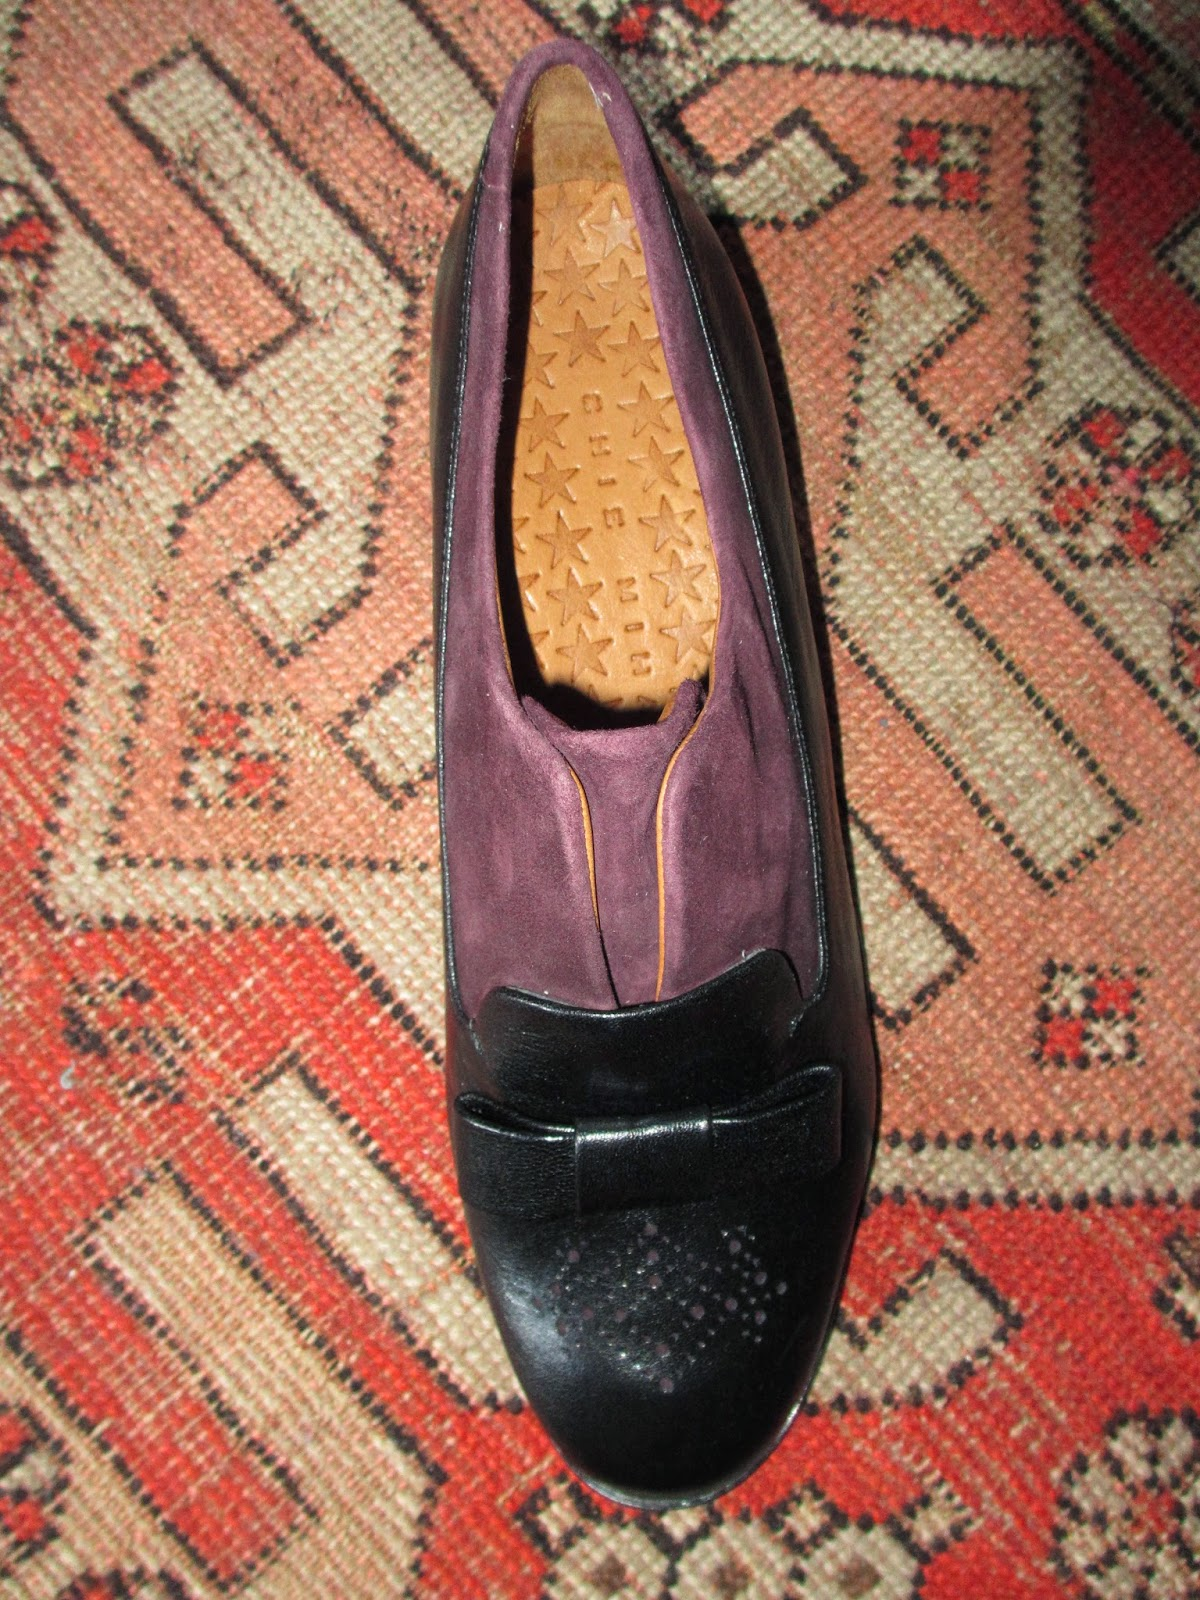 ... slippers at home, boots outdoors, and carry lighter-weight shoes to  friends' homes. Perhaps these extremely well-made shoes might get their  fall wear, ...